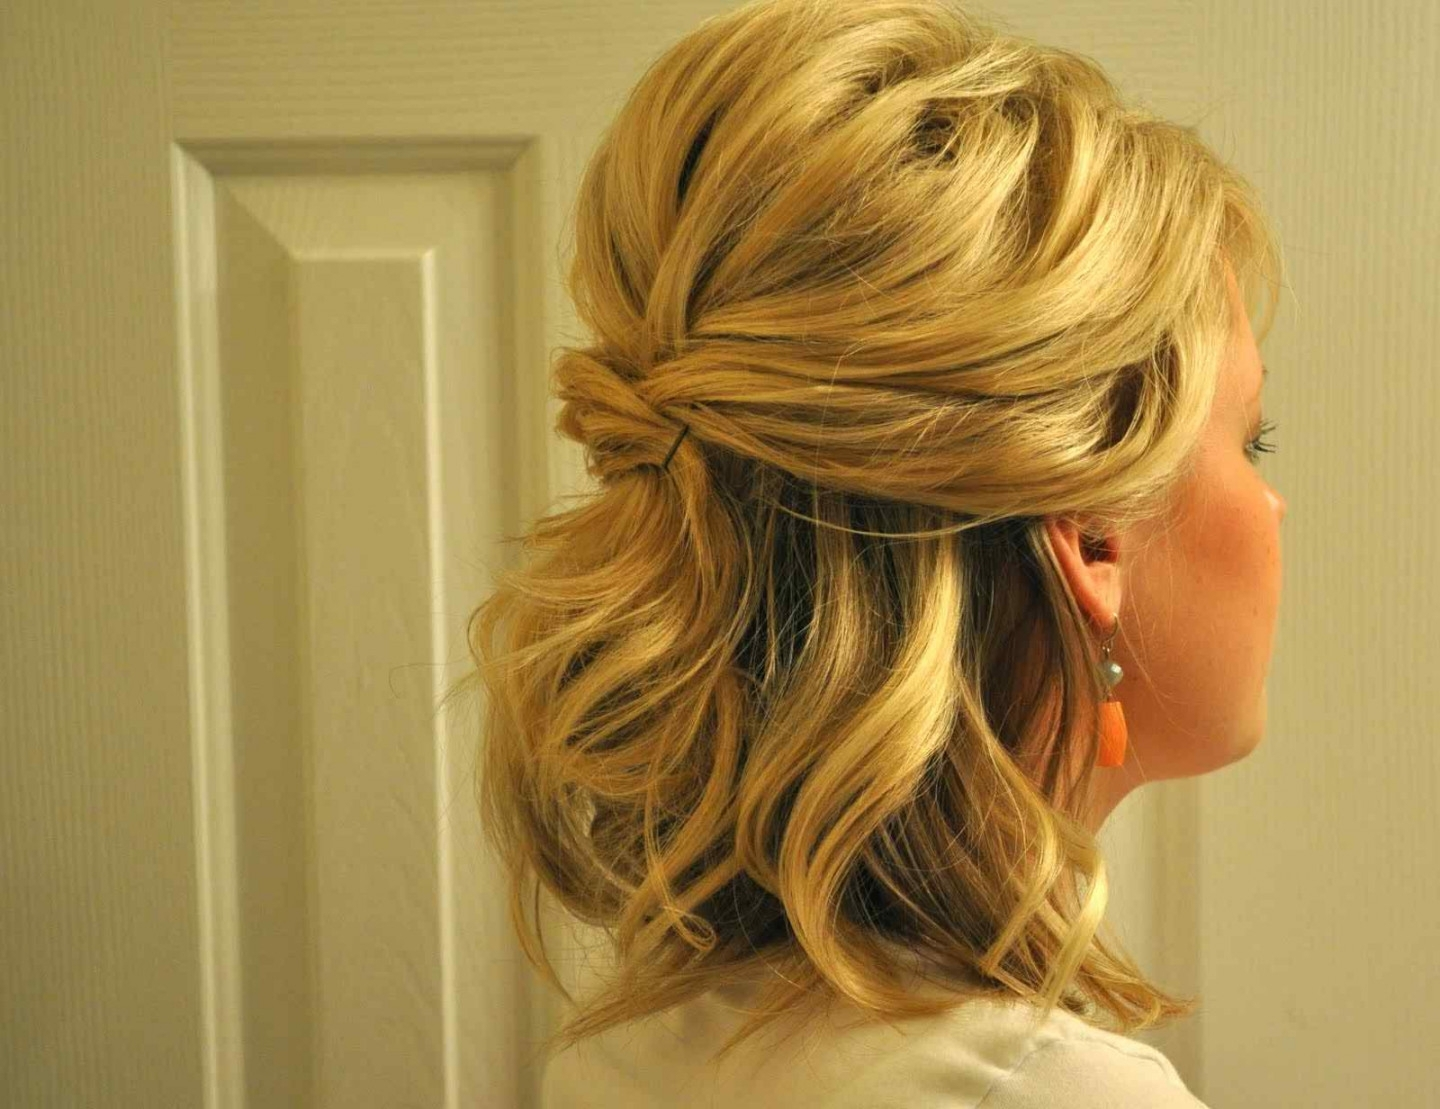 Easy Half Up Hairstyles For Medium Hair – Hairstyle For Women & Man Inside Half Updo Hairstyles For Medium Hair (View 8 of 15)